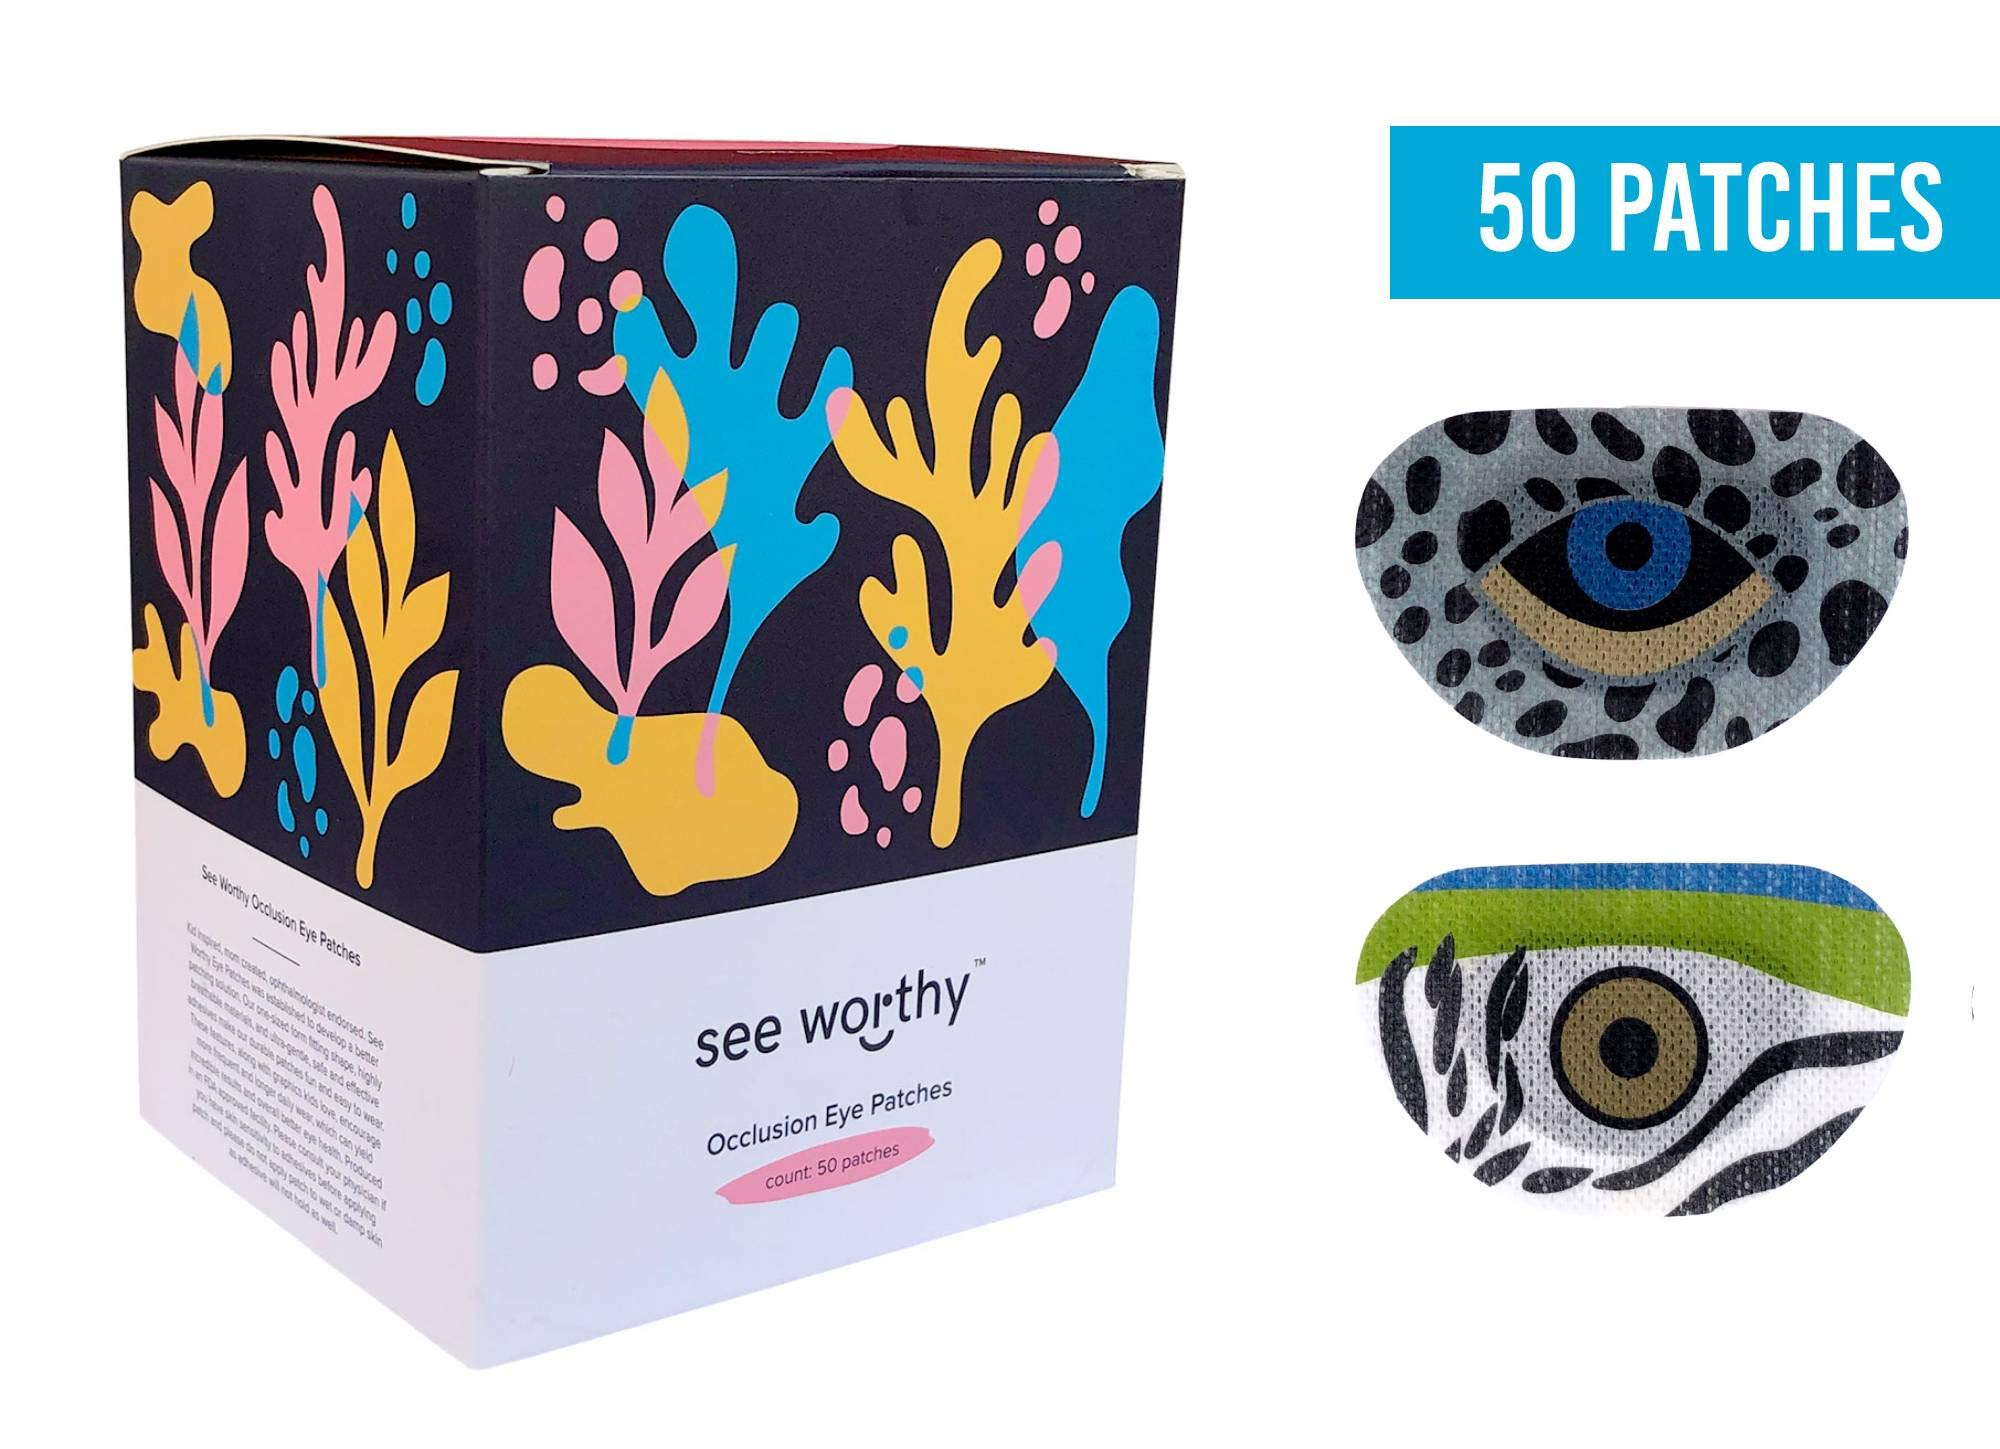 See Worthy (Snow Leopard and Macaw) Parrot Adhesive Kids Eye Patches, Innovative Shape, Smart Adhesive Technology, Breathable Material and Fun Designs, (50 per Box) (Regular Size)